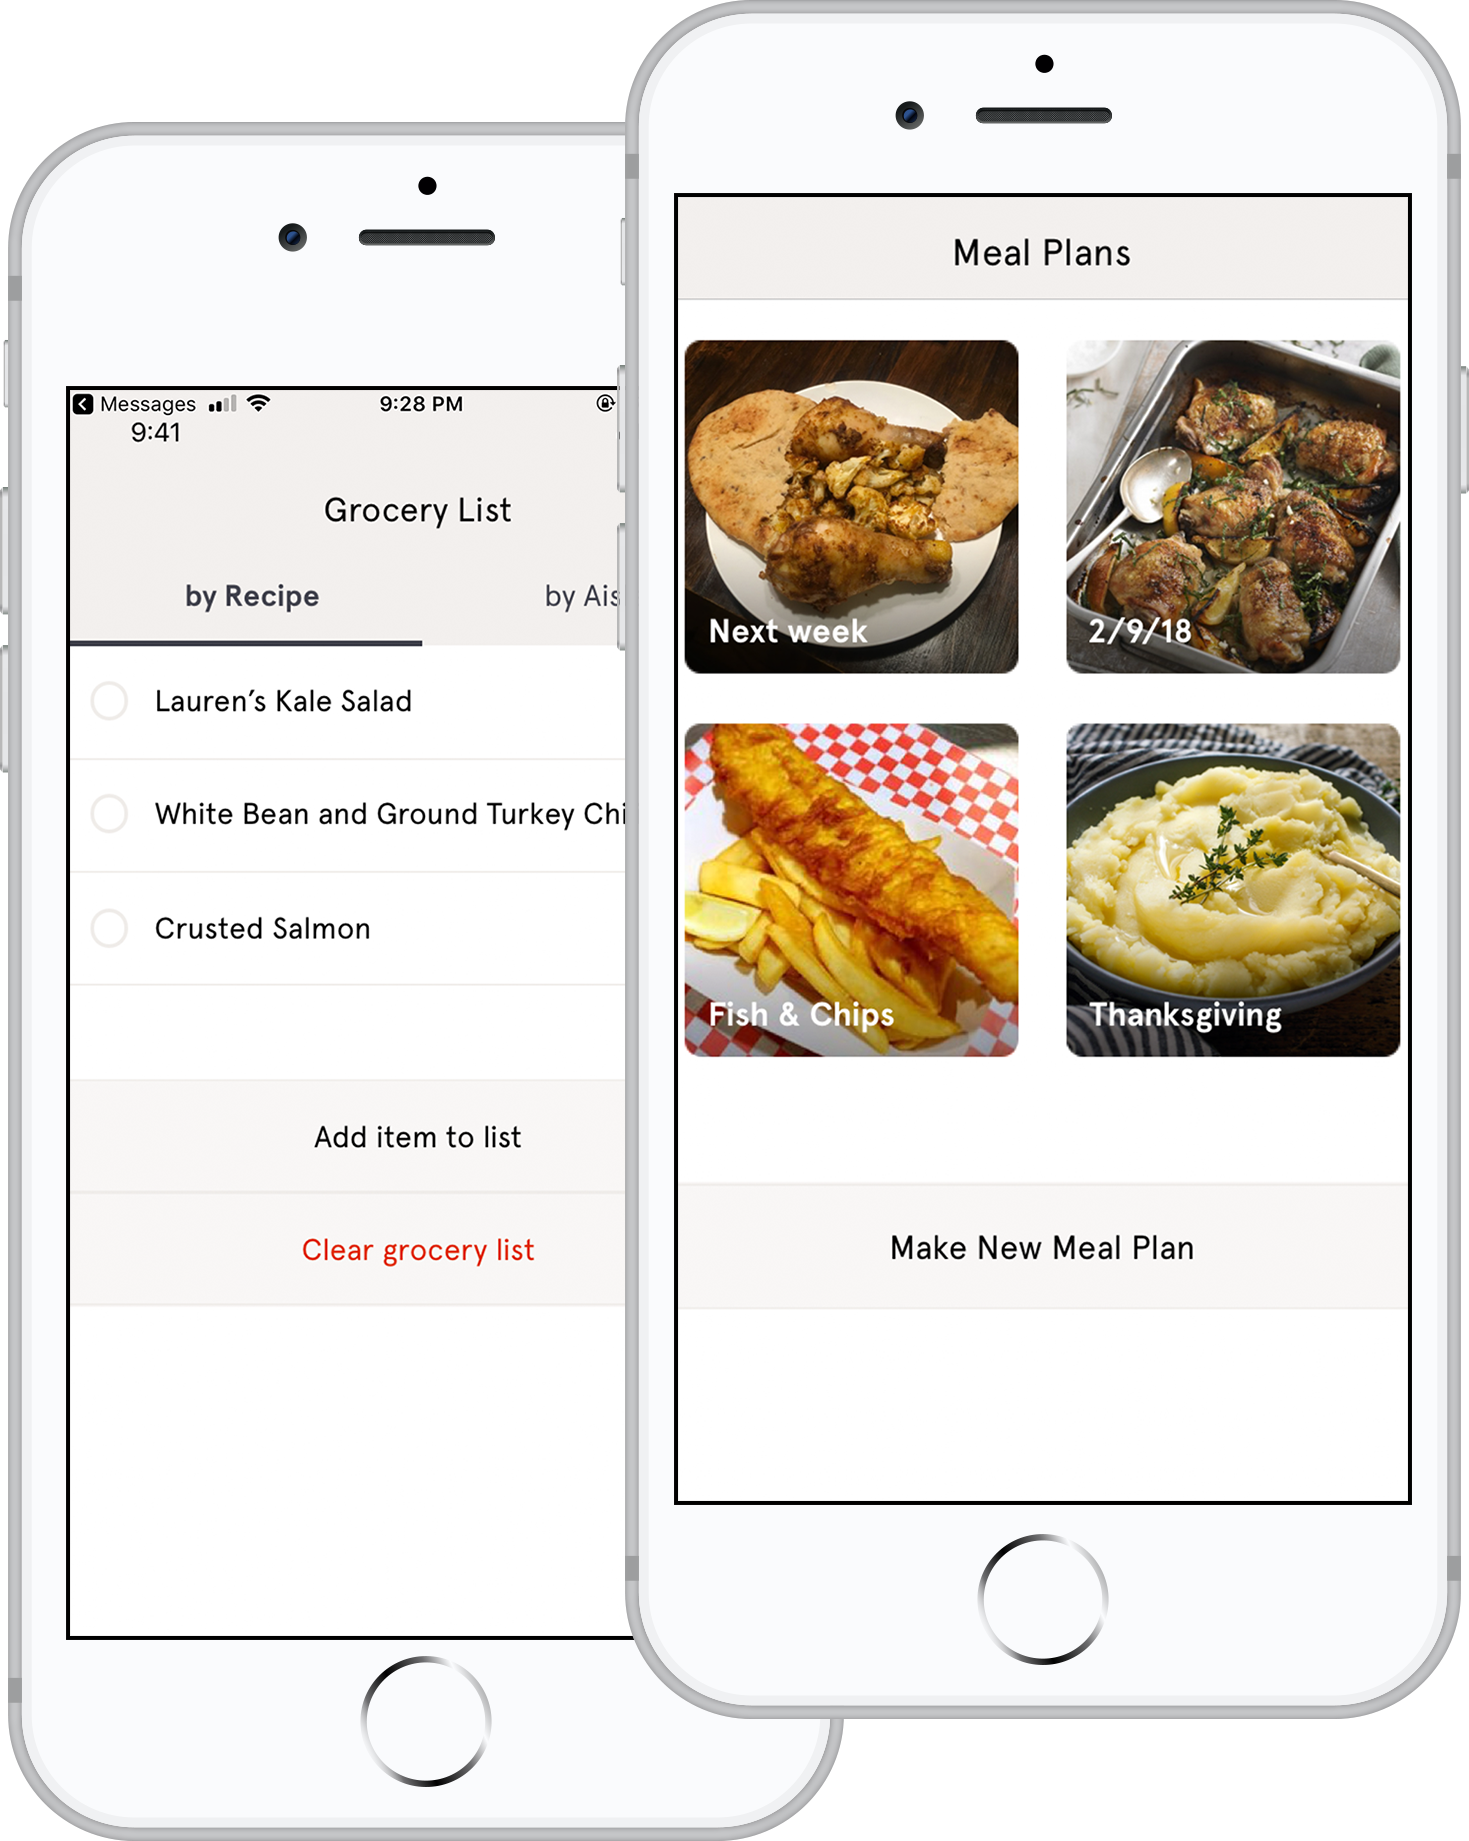 Recipe Box -> Meal Plan -> Grocery List - When you see something that looks interesting, save the whole meal to your recipe box. You can also save individual recipes, if you find them through search.Start with one meal in your meal plan, and then add others. You can delete meals or recipes as you build your plan.